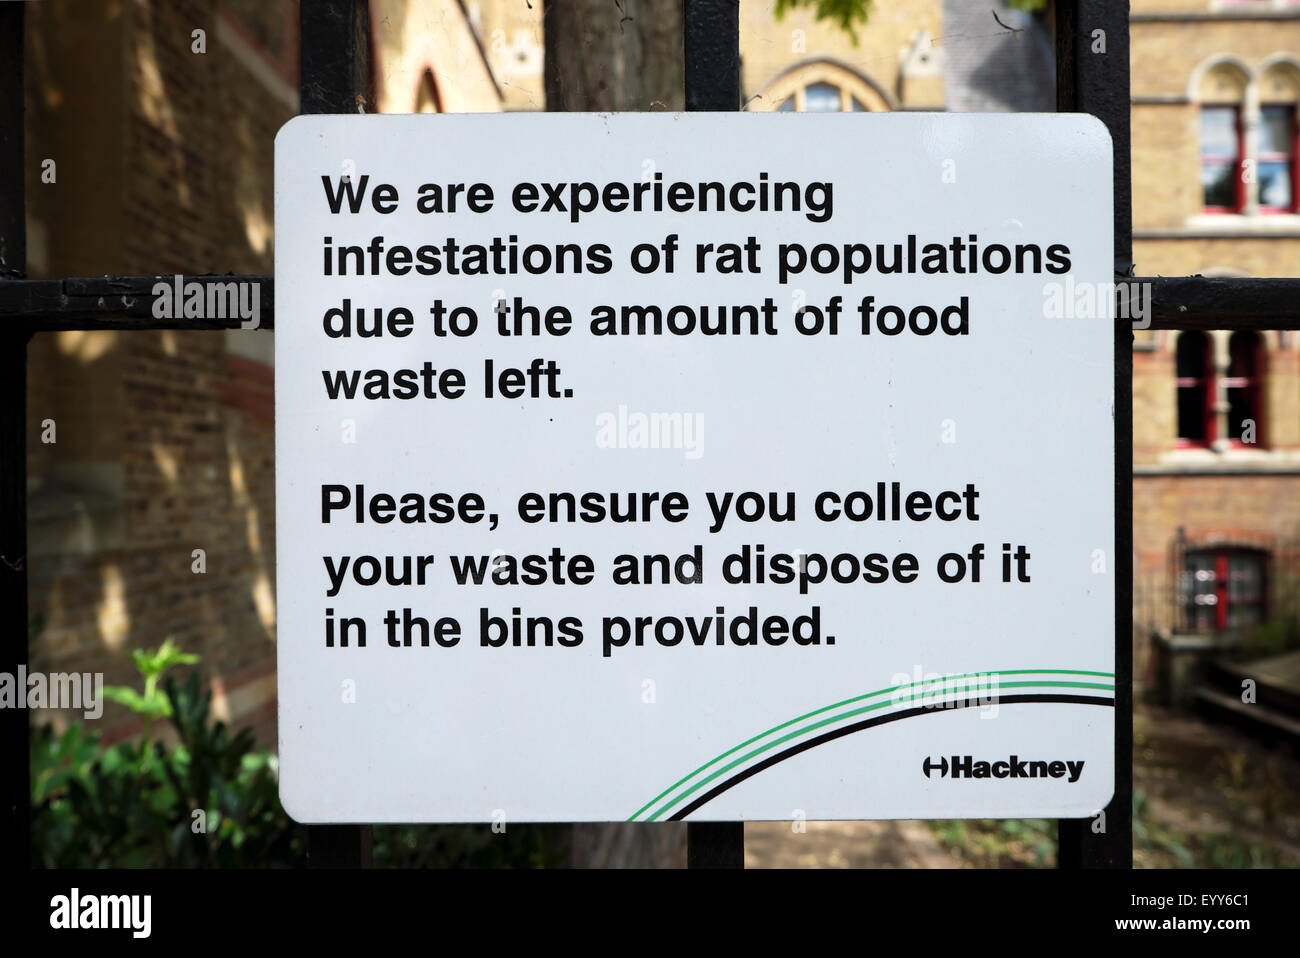 Pest sign on a Hackney railing warning of increase of rat populations due to food waste in Hackney, East London - Stock Image